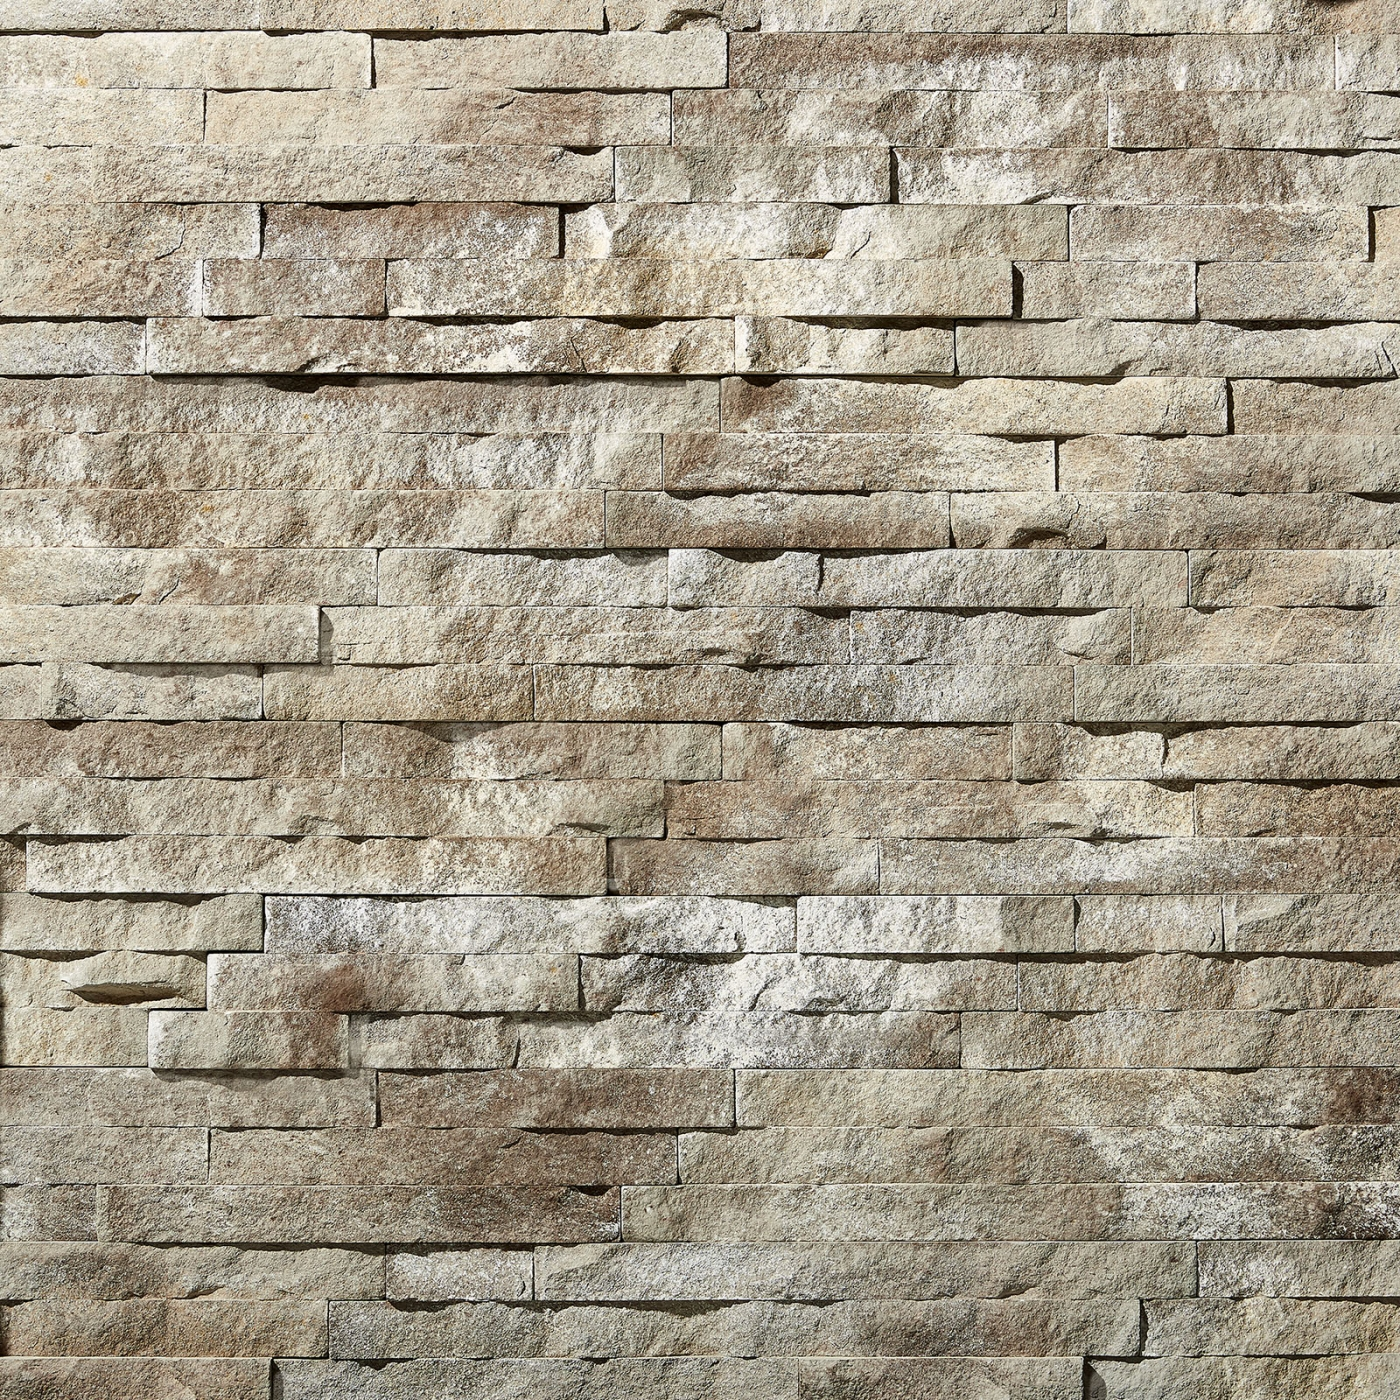 Lunar Ripiano Stone Veneer from Environmental StoneWorks